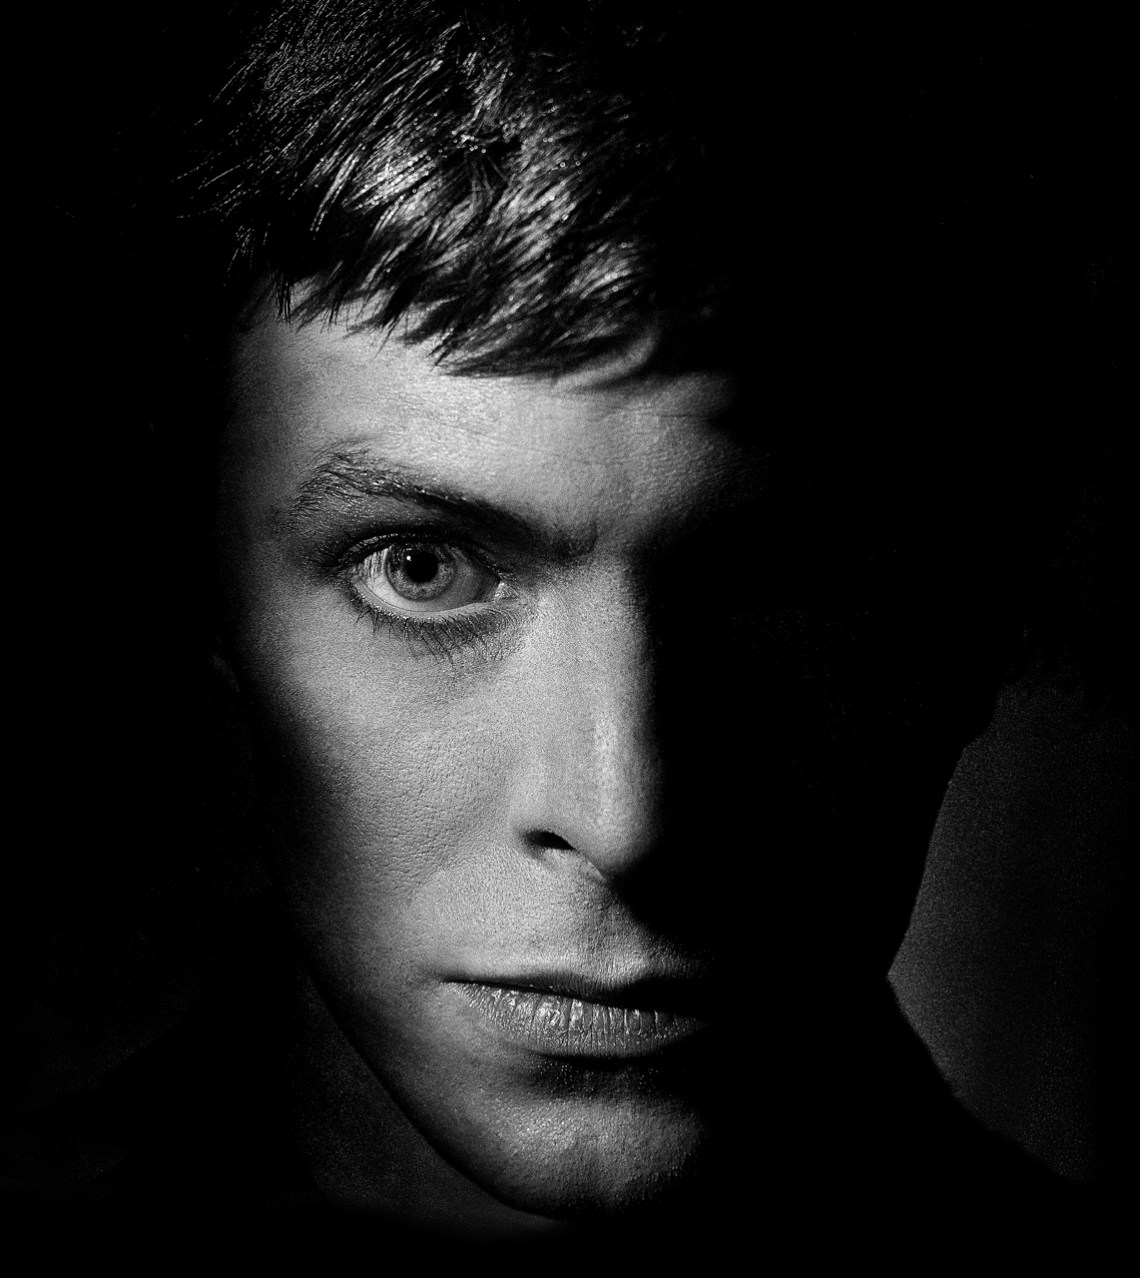 David-Bowie.-Dark.Arrowsmith.Dark.©